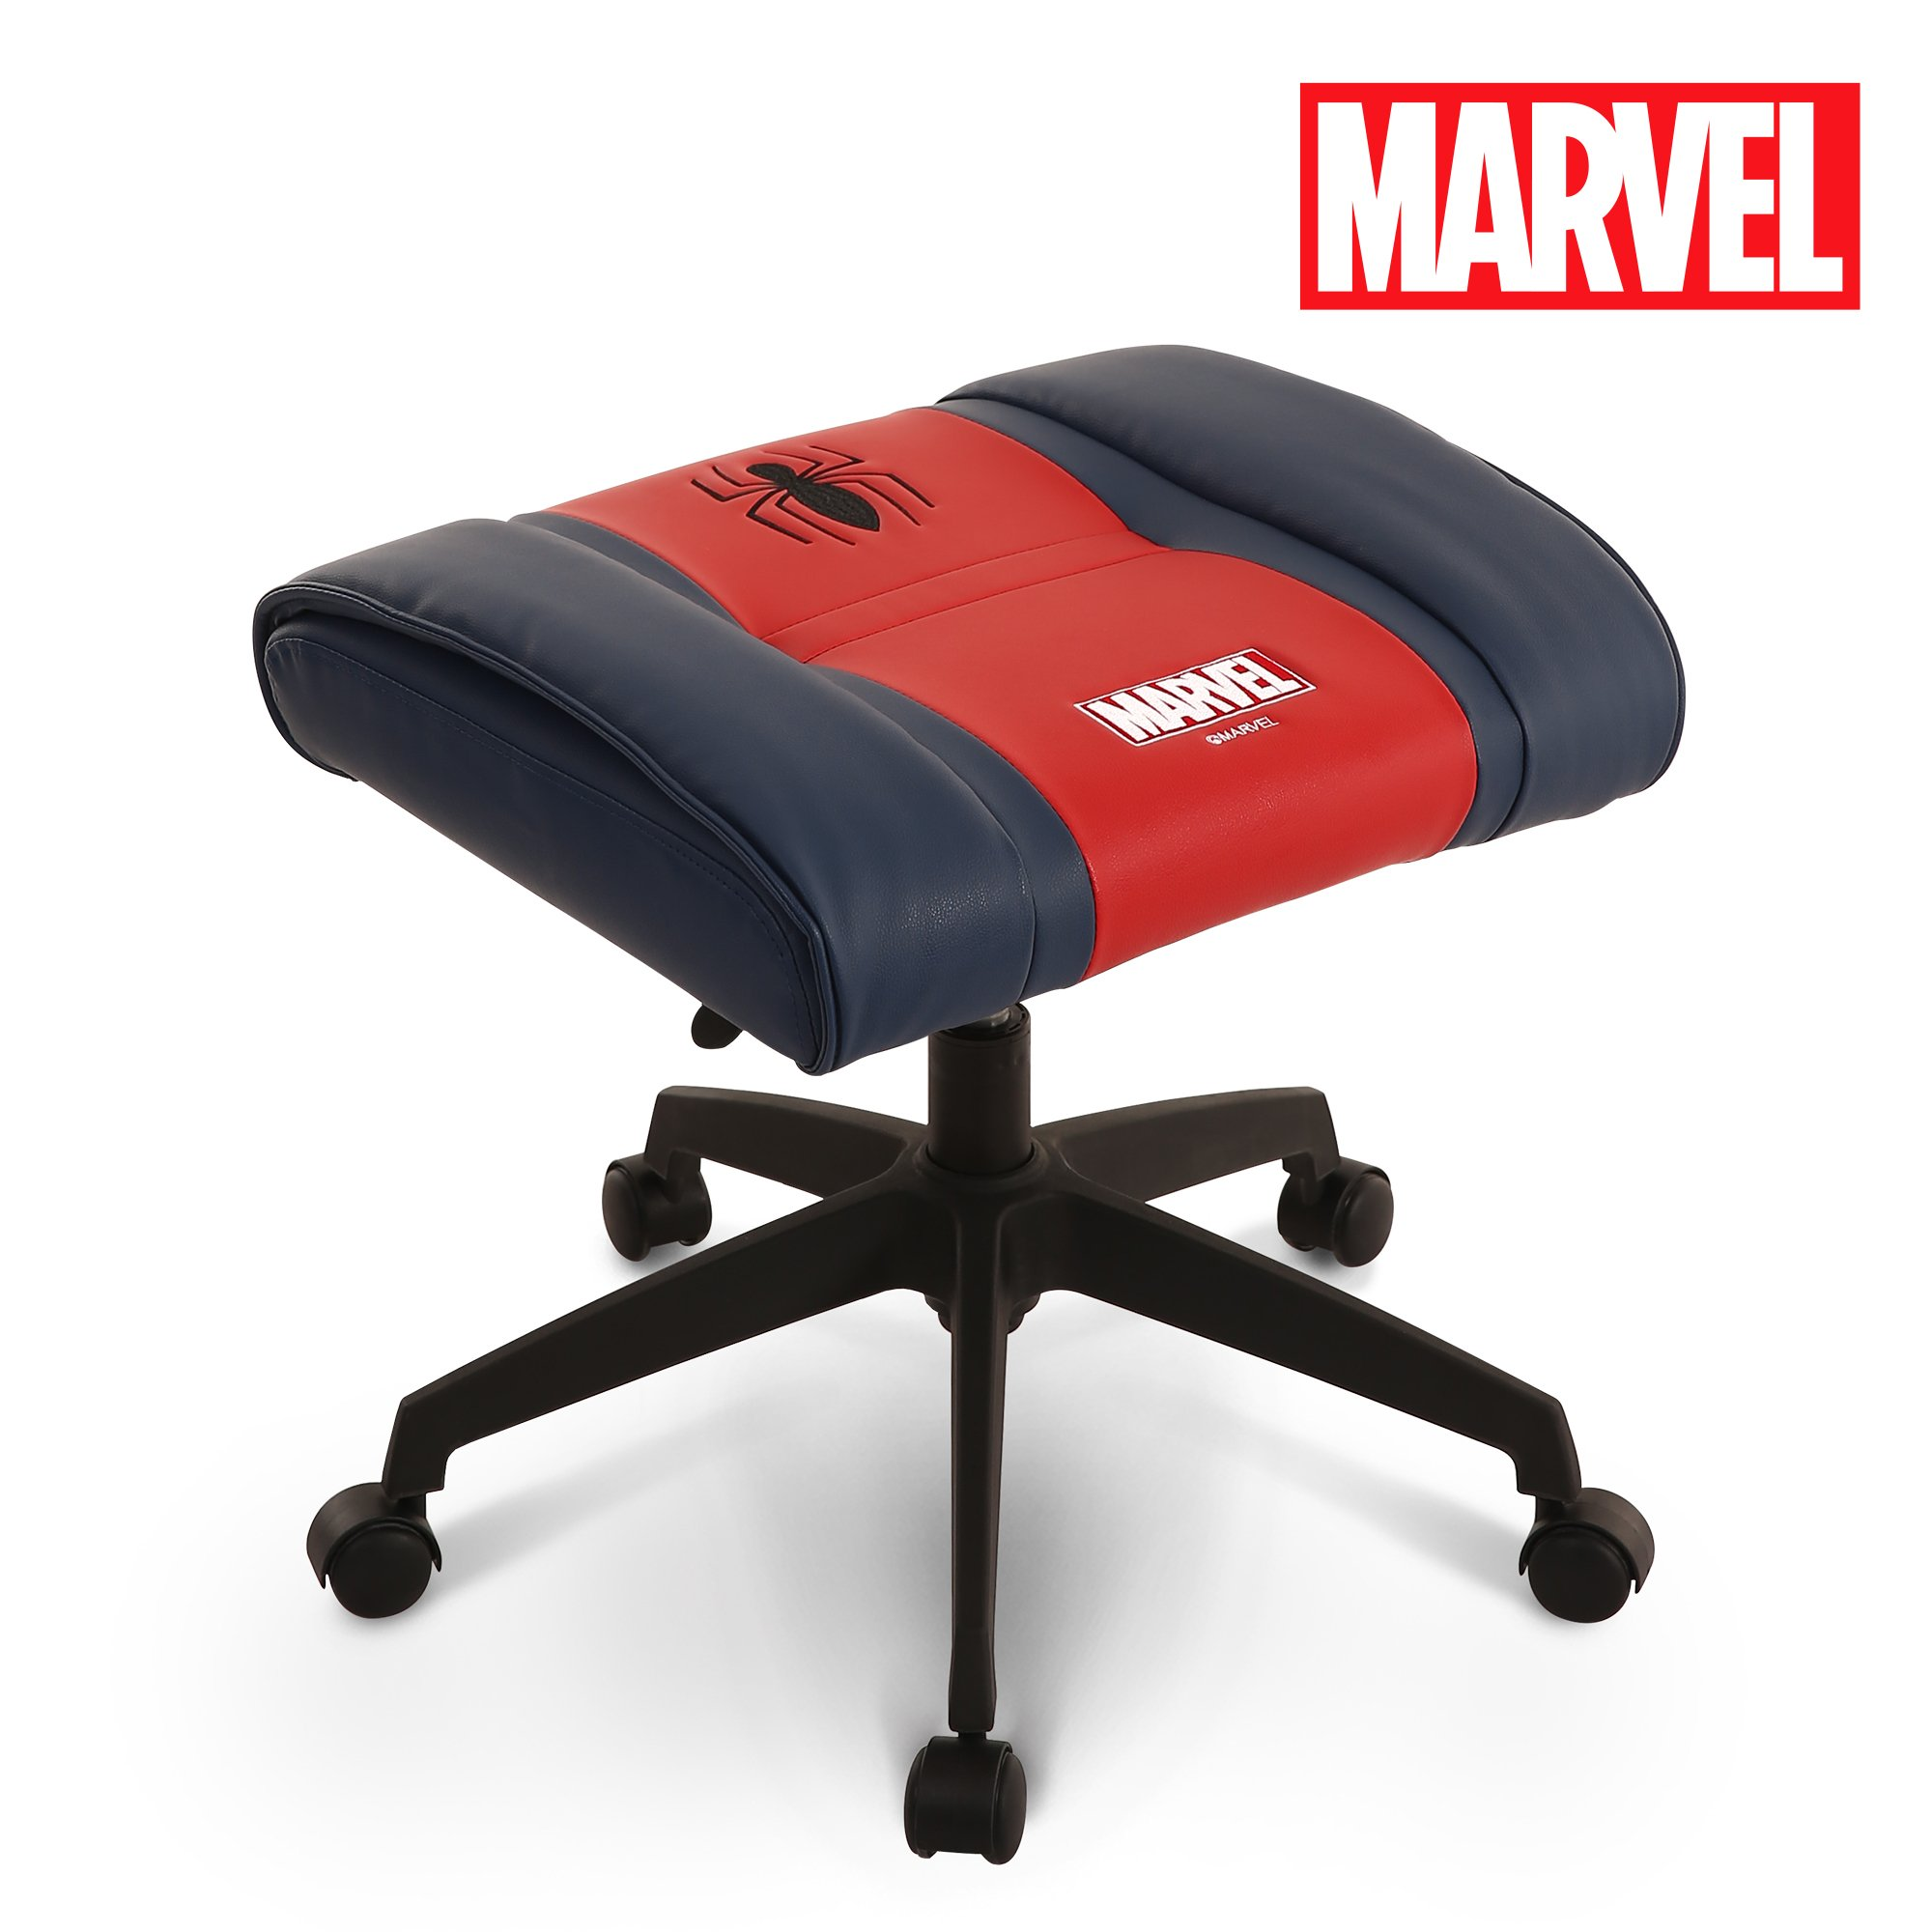 Licensed Marvel Premium Ottoman Foot Rest Seat Stool : Height Adjustable Office Home Furniture Premium PU Leather, Neo Chair (Spider-Man, Red)